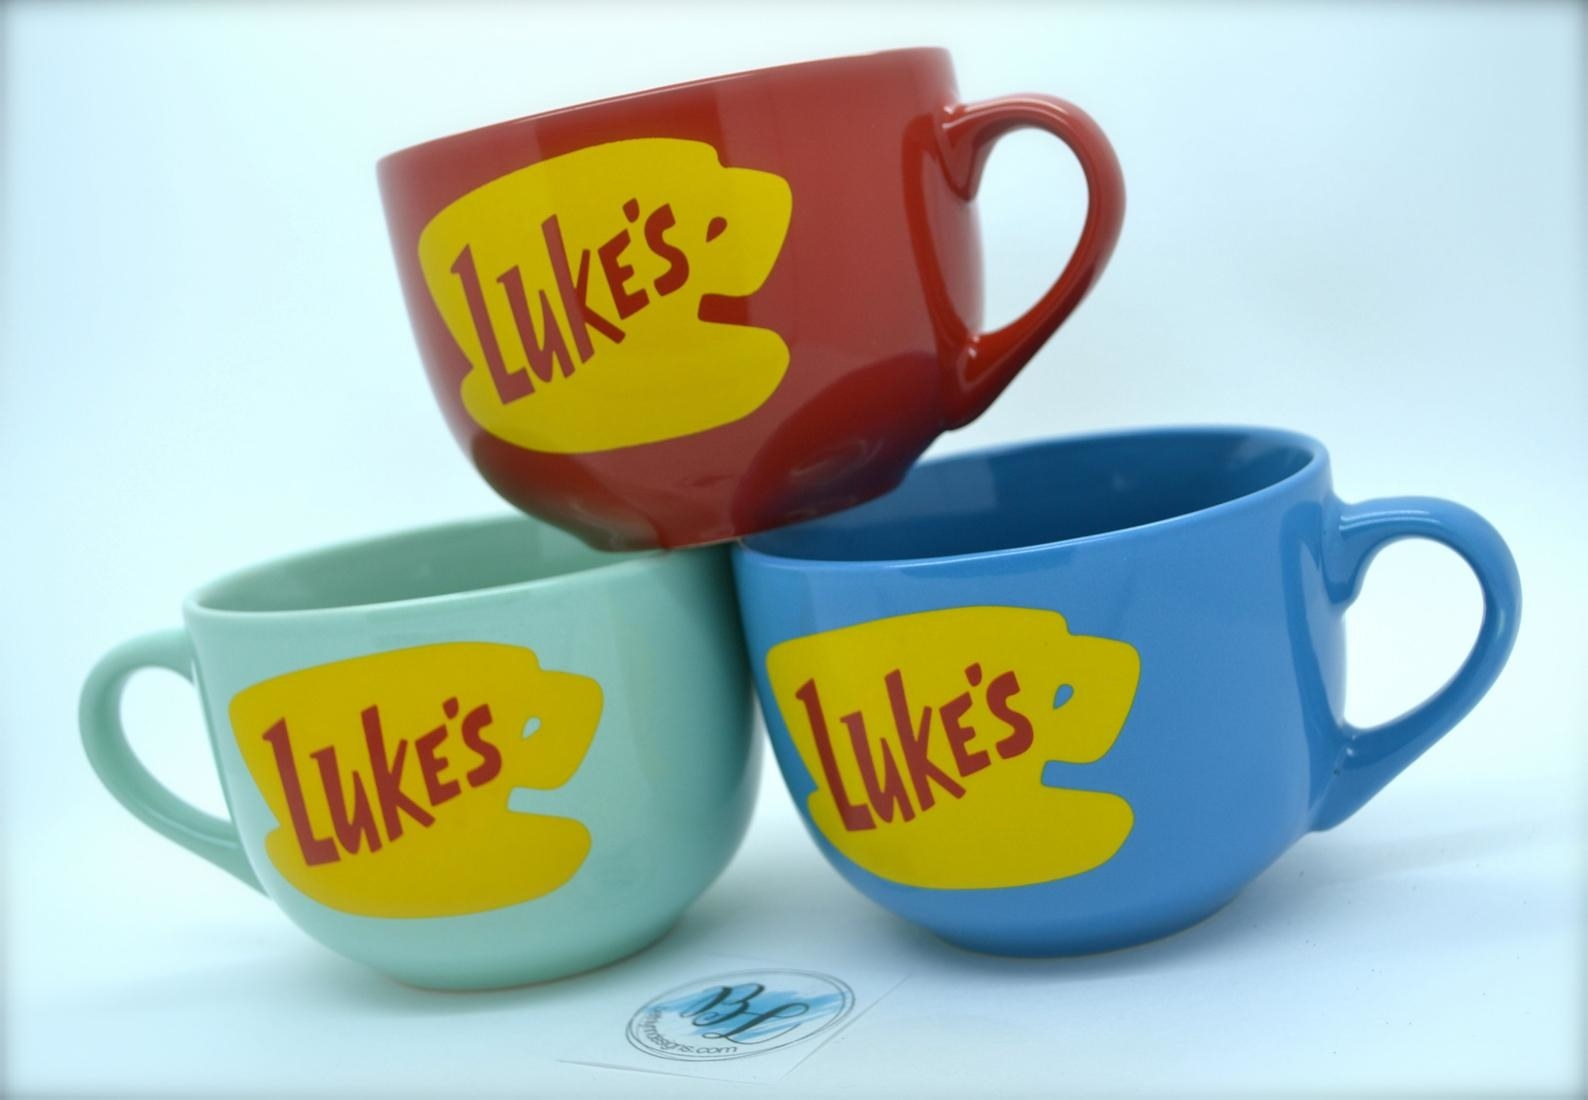 the mugs in red, mint, and blue with the Luke's logo printed on them